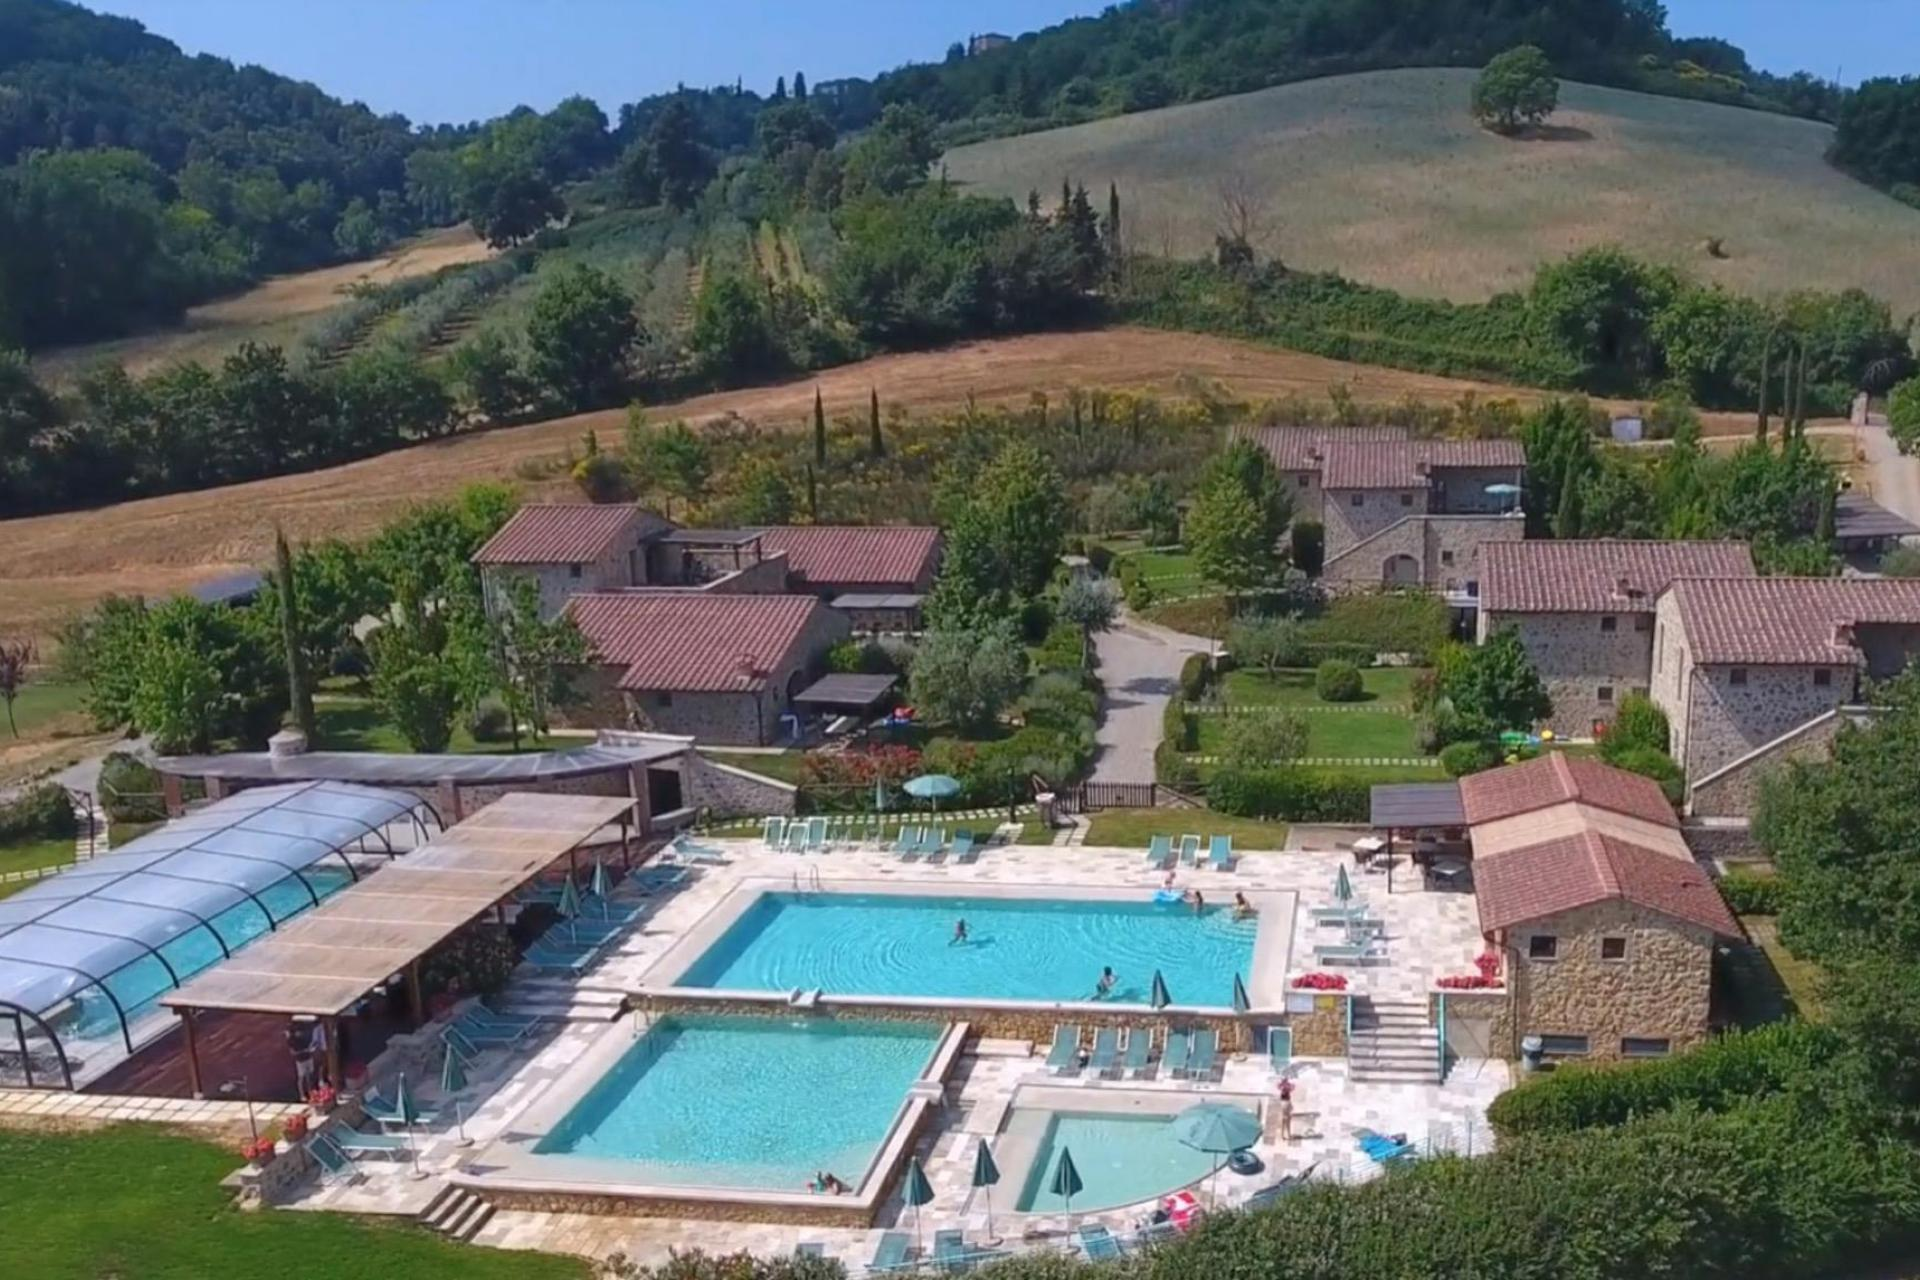 Family-friendly country resort with 4 beautiful swimming pools